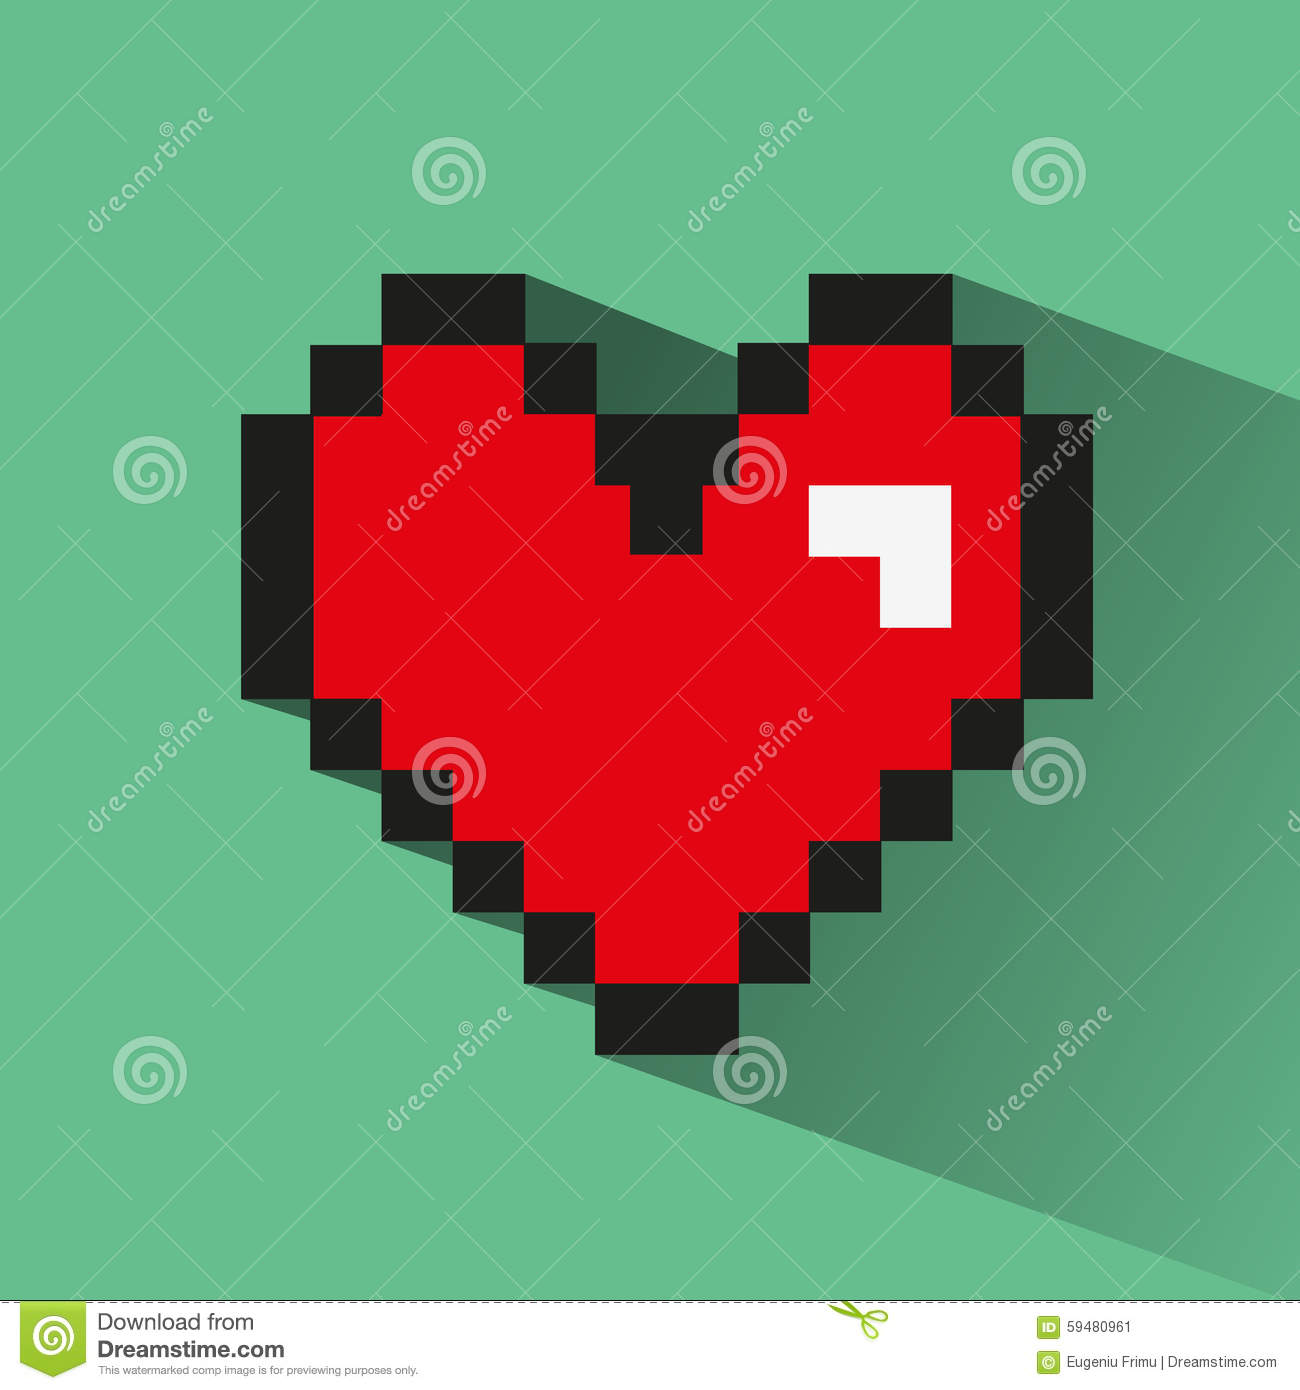 Pixelated Heart On Green Backdrop. Stock Vector